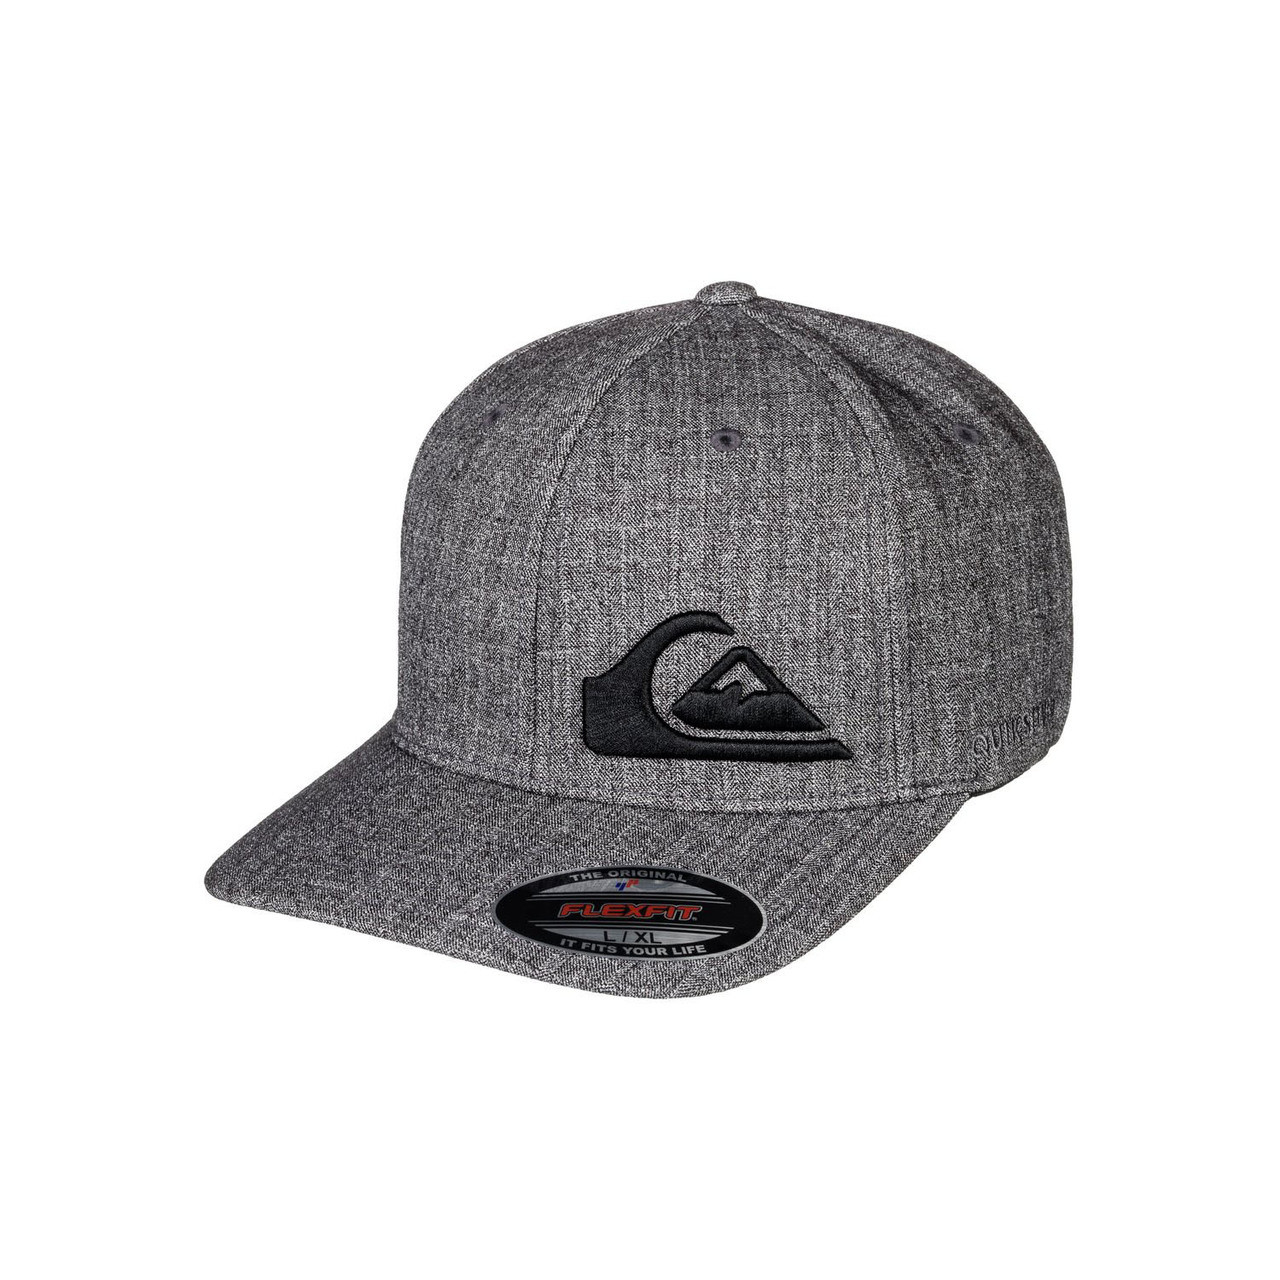 Quiksilver Hat - Final - Charcoal Heather - Surf and Dirt 62884b83879